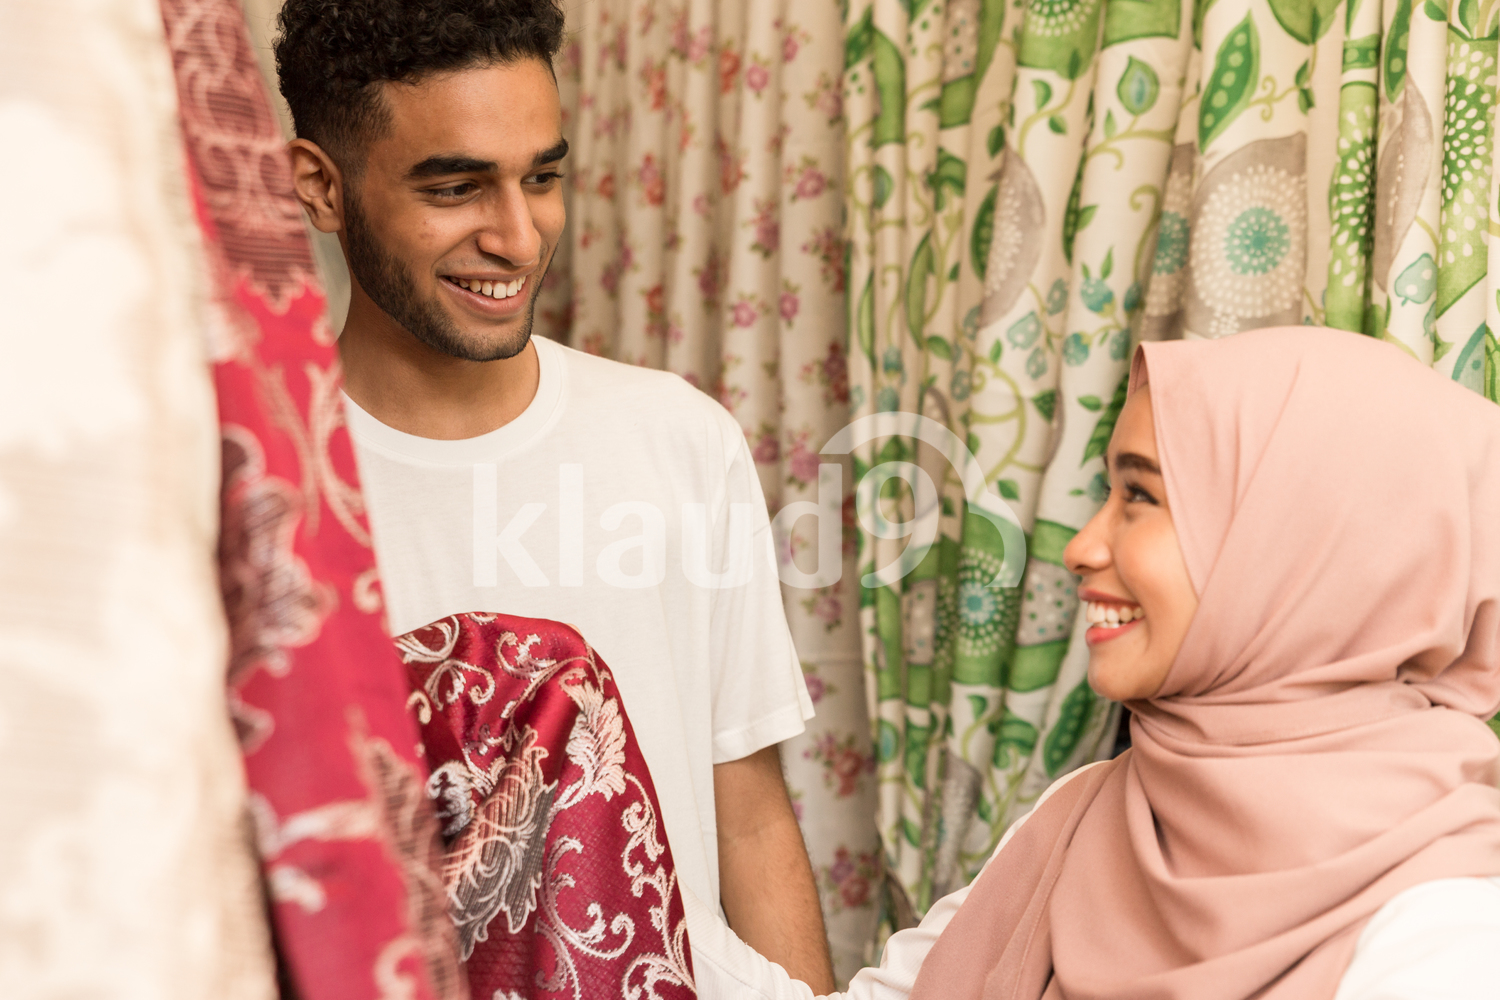 Young muslim couple smiling in fabric store